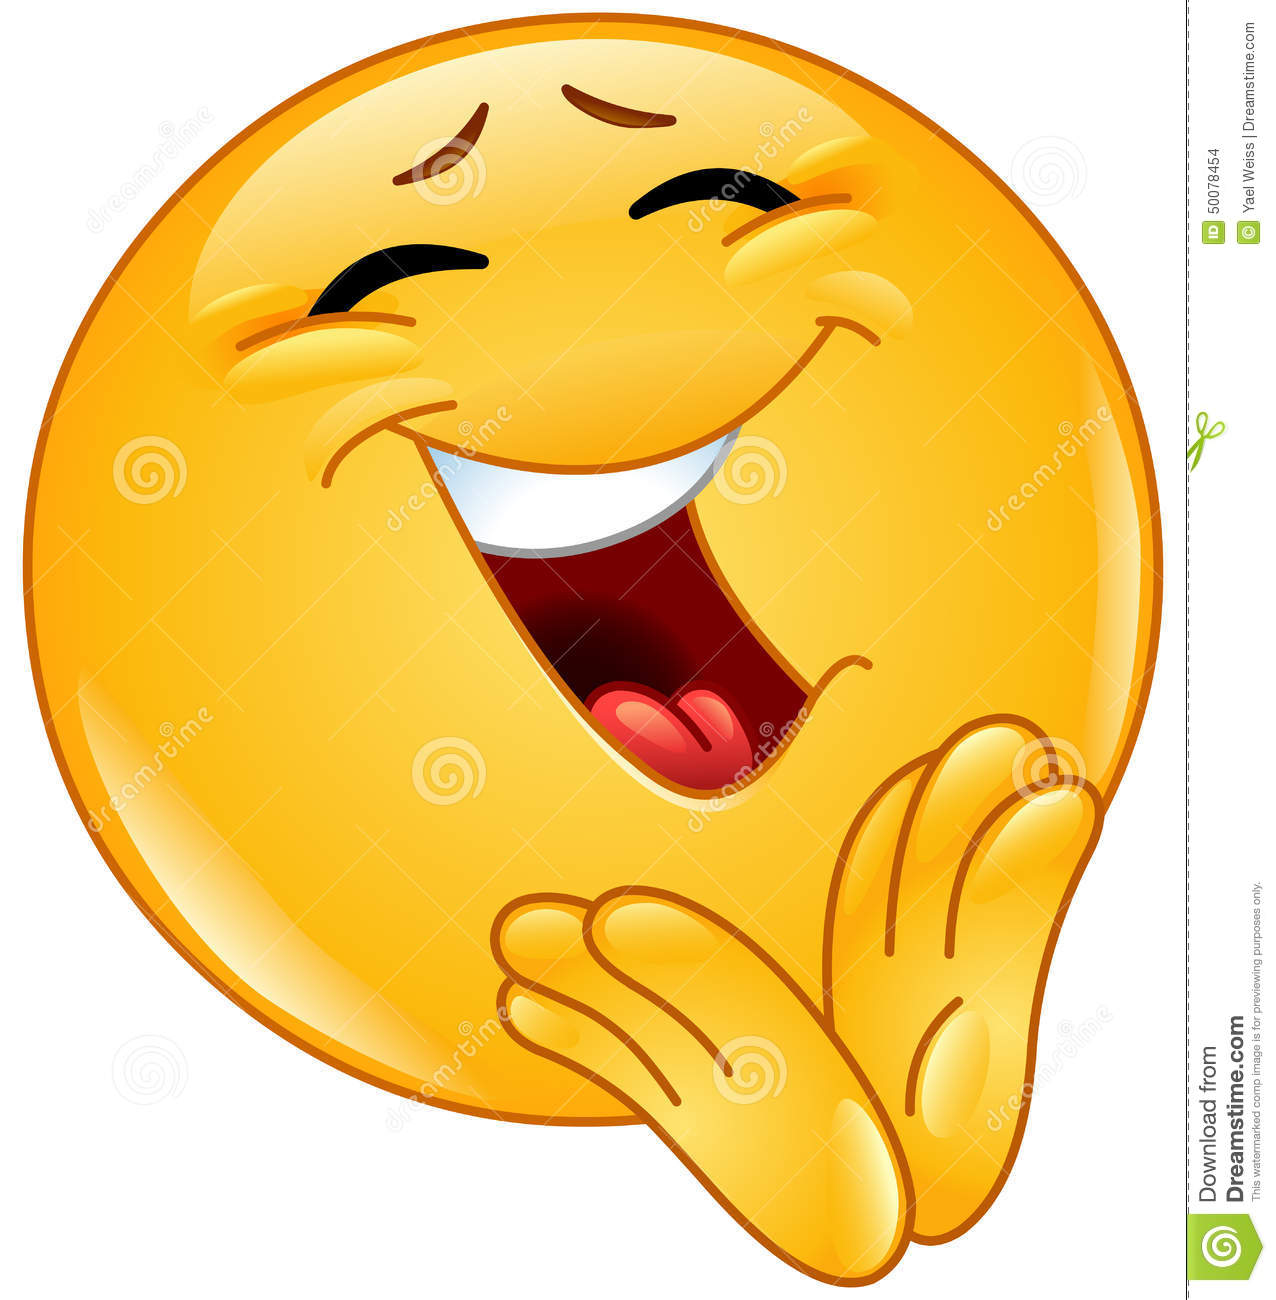 Clapping Cheerful Emoticon Stock Vector - Image: 50078454